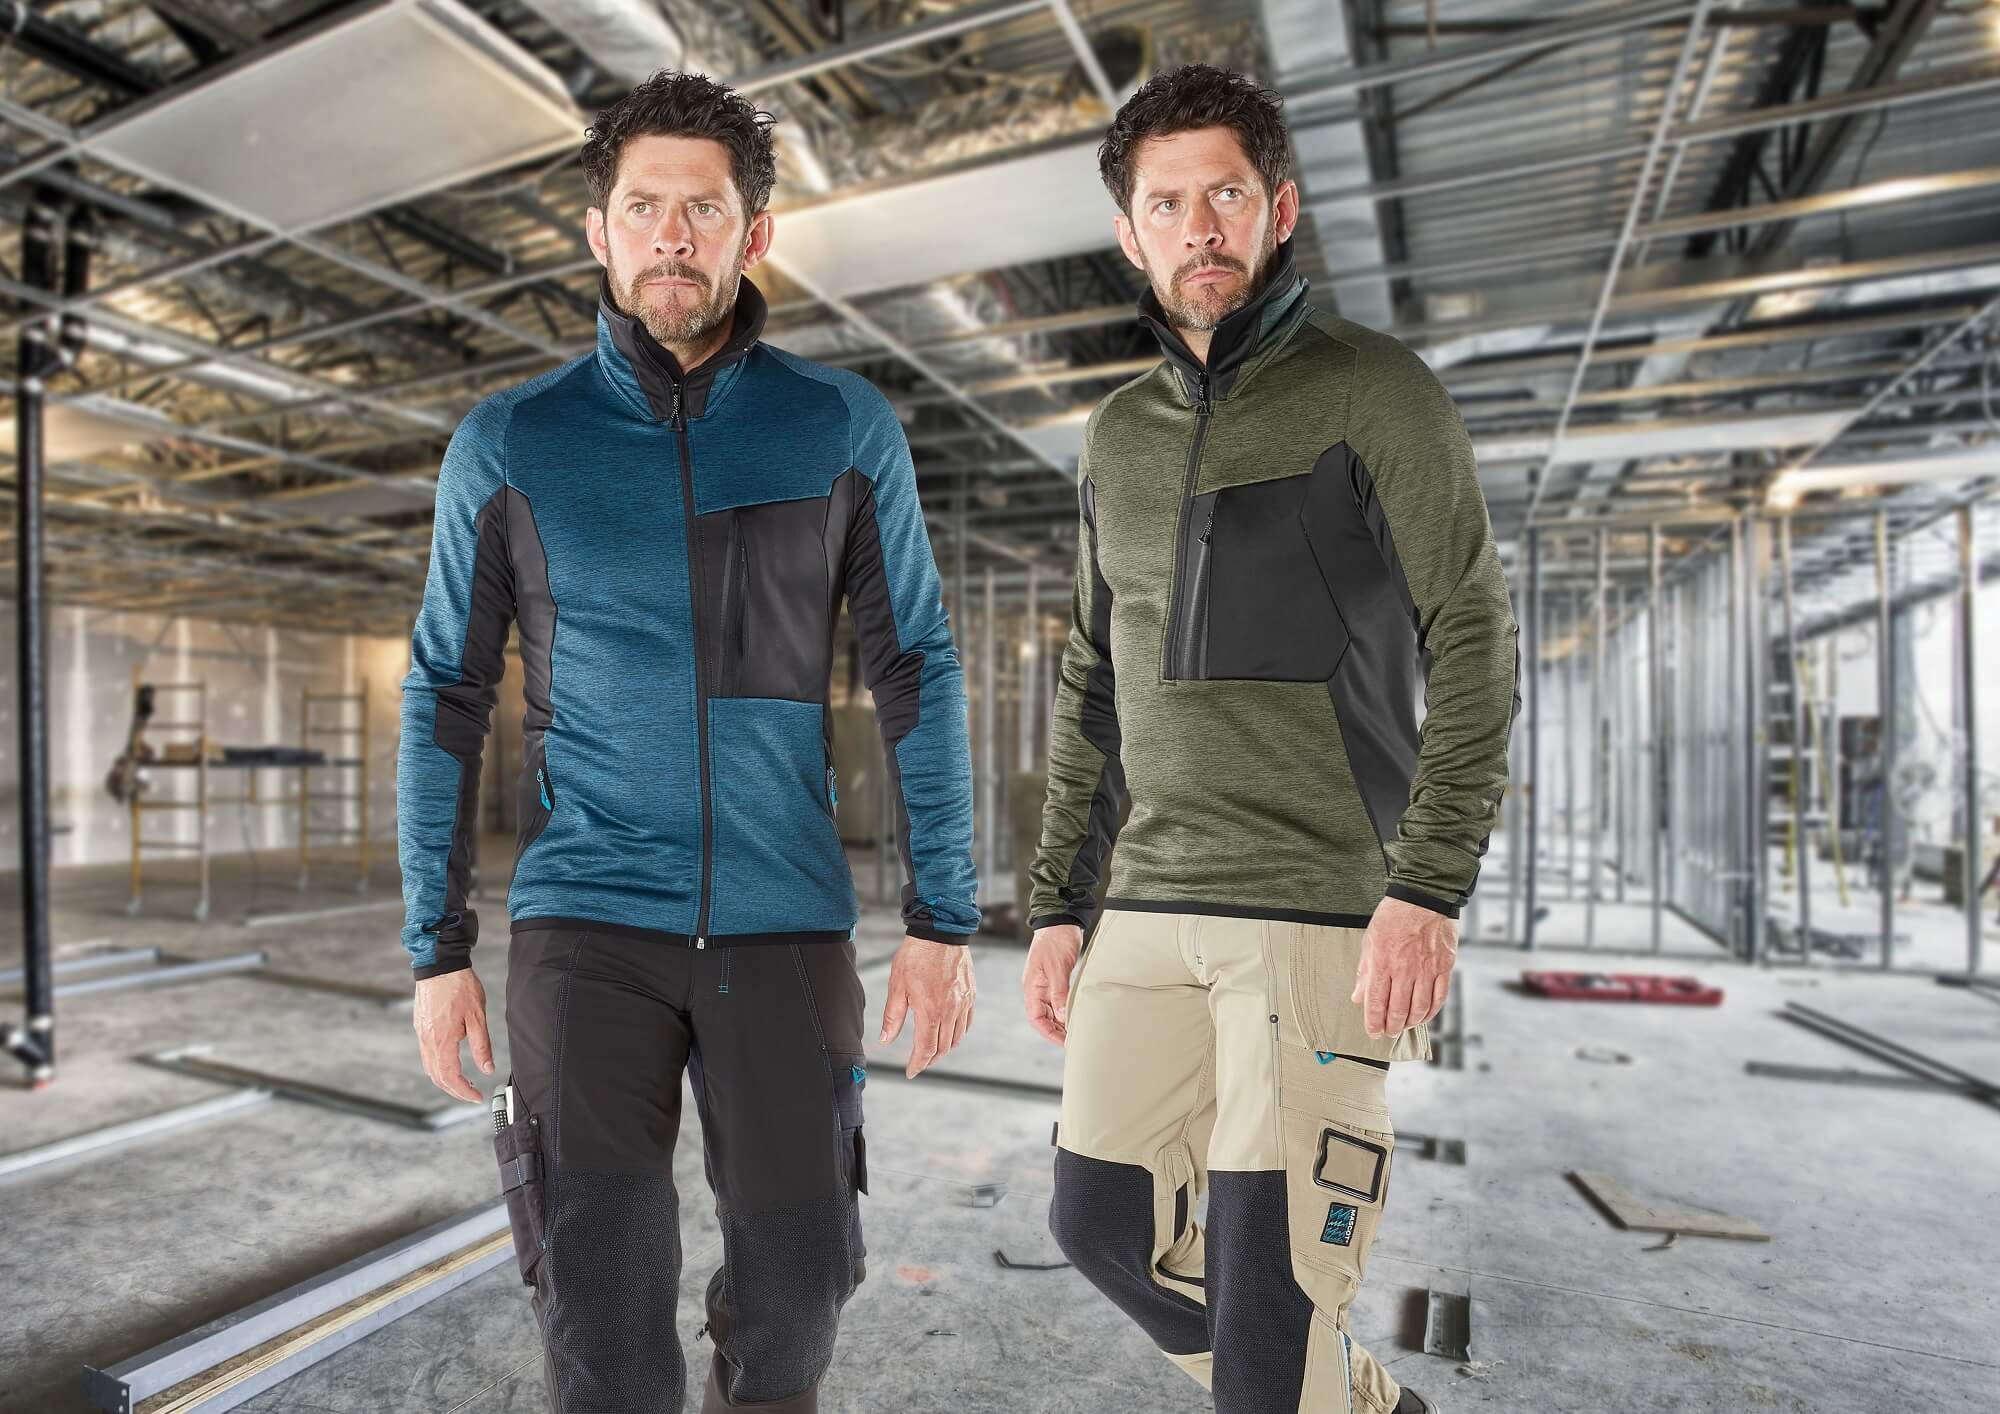 Zipped Jumpers - Hombres - Construction site